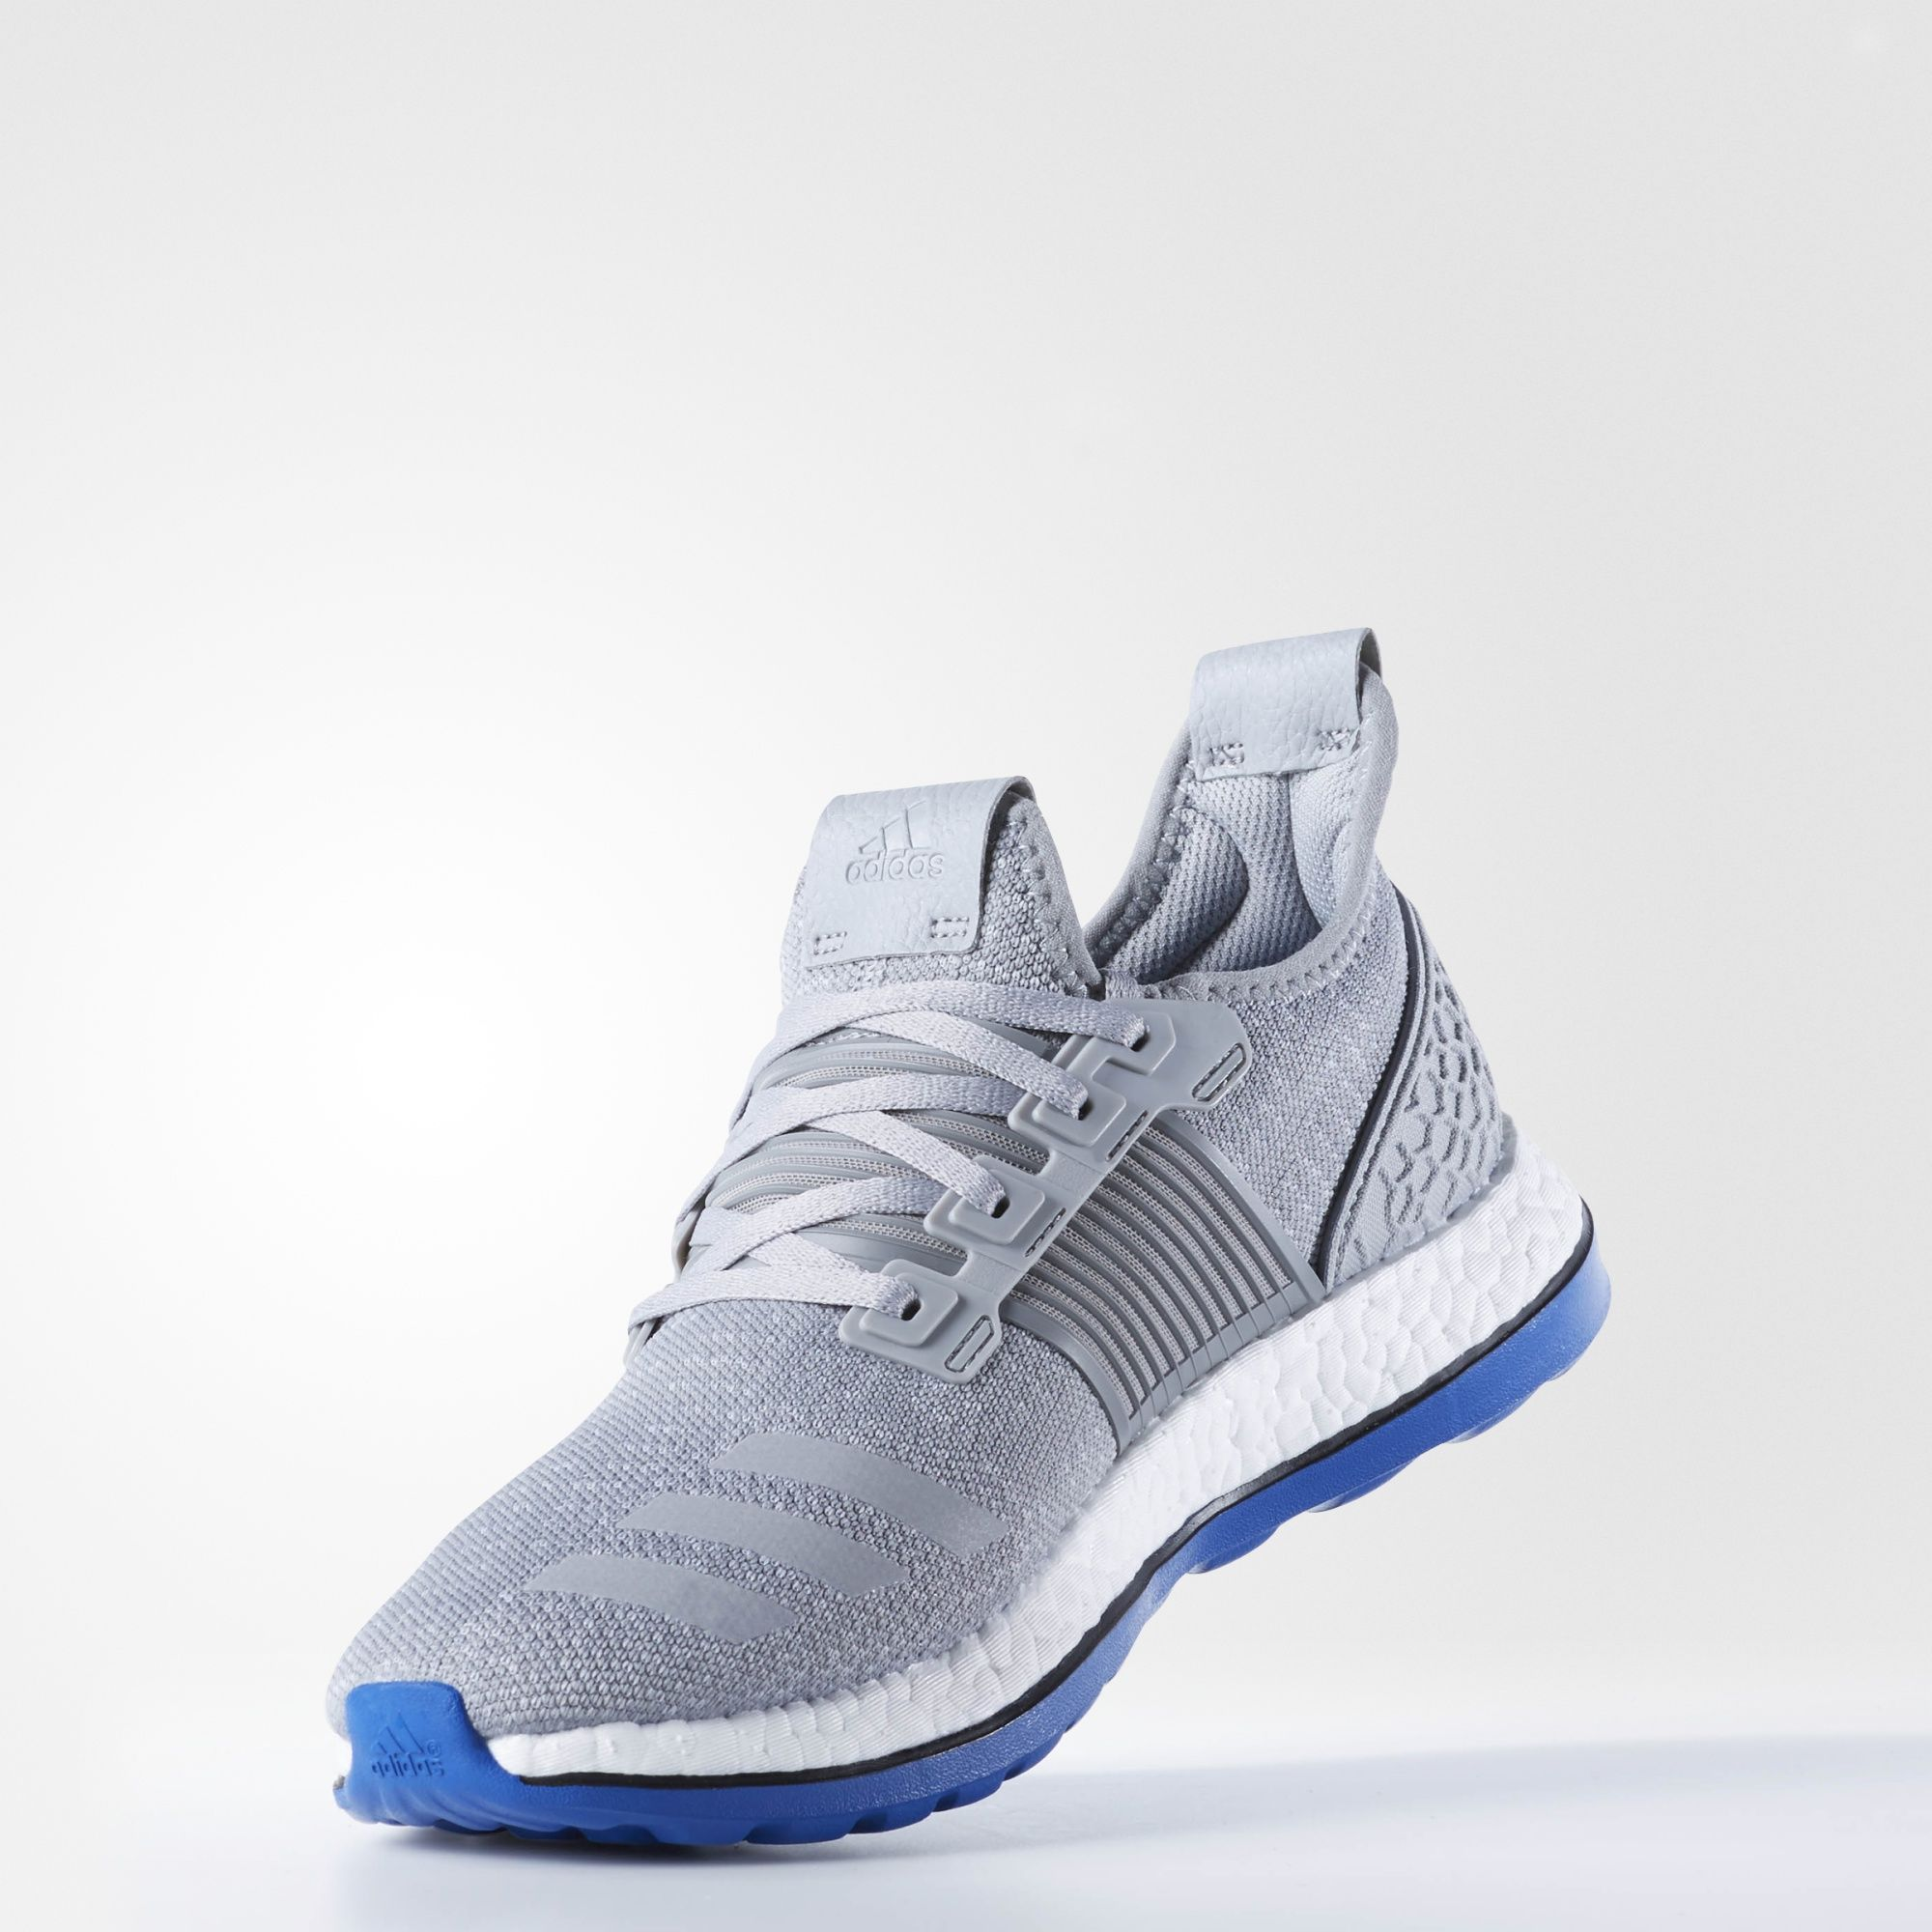 reputable site 25fe0 33d38 adidas - Pure Boost ZG Prime - mid grey   blue    140€